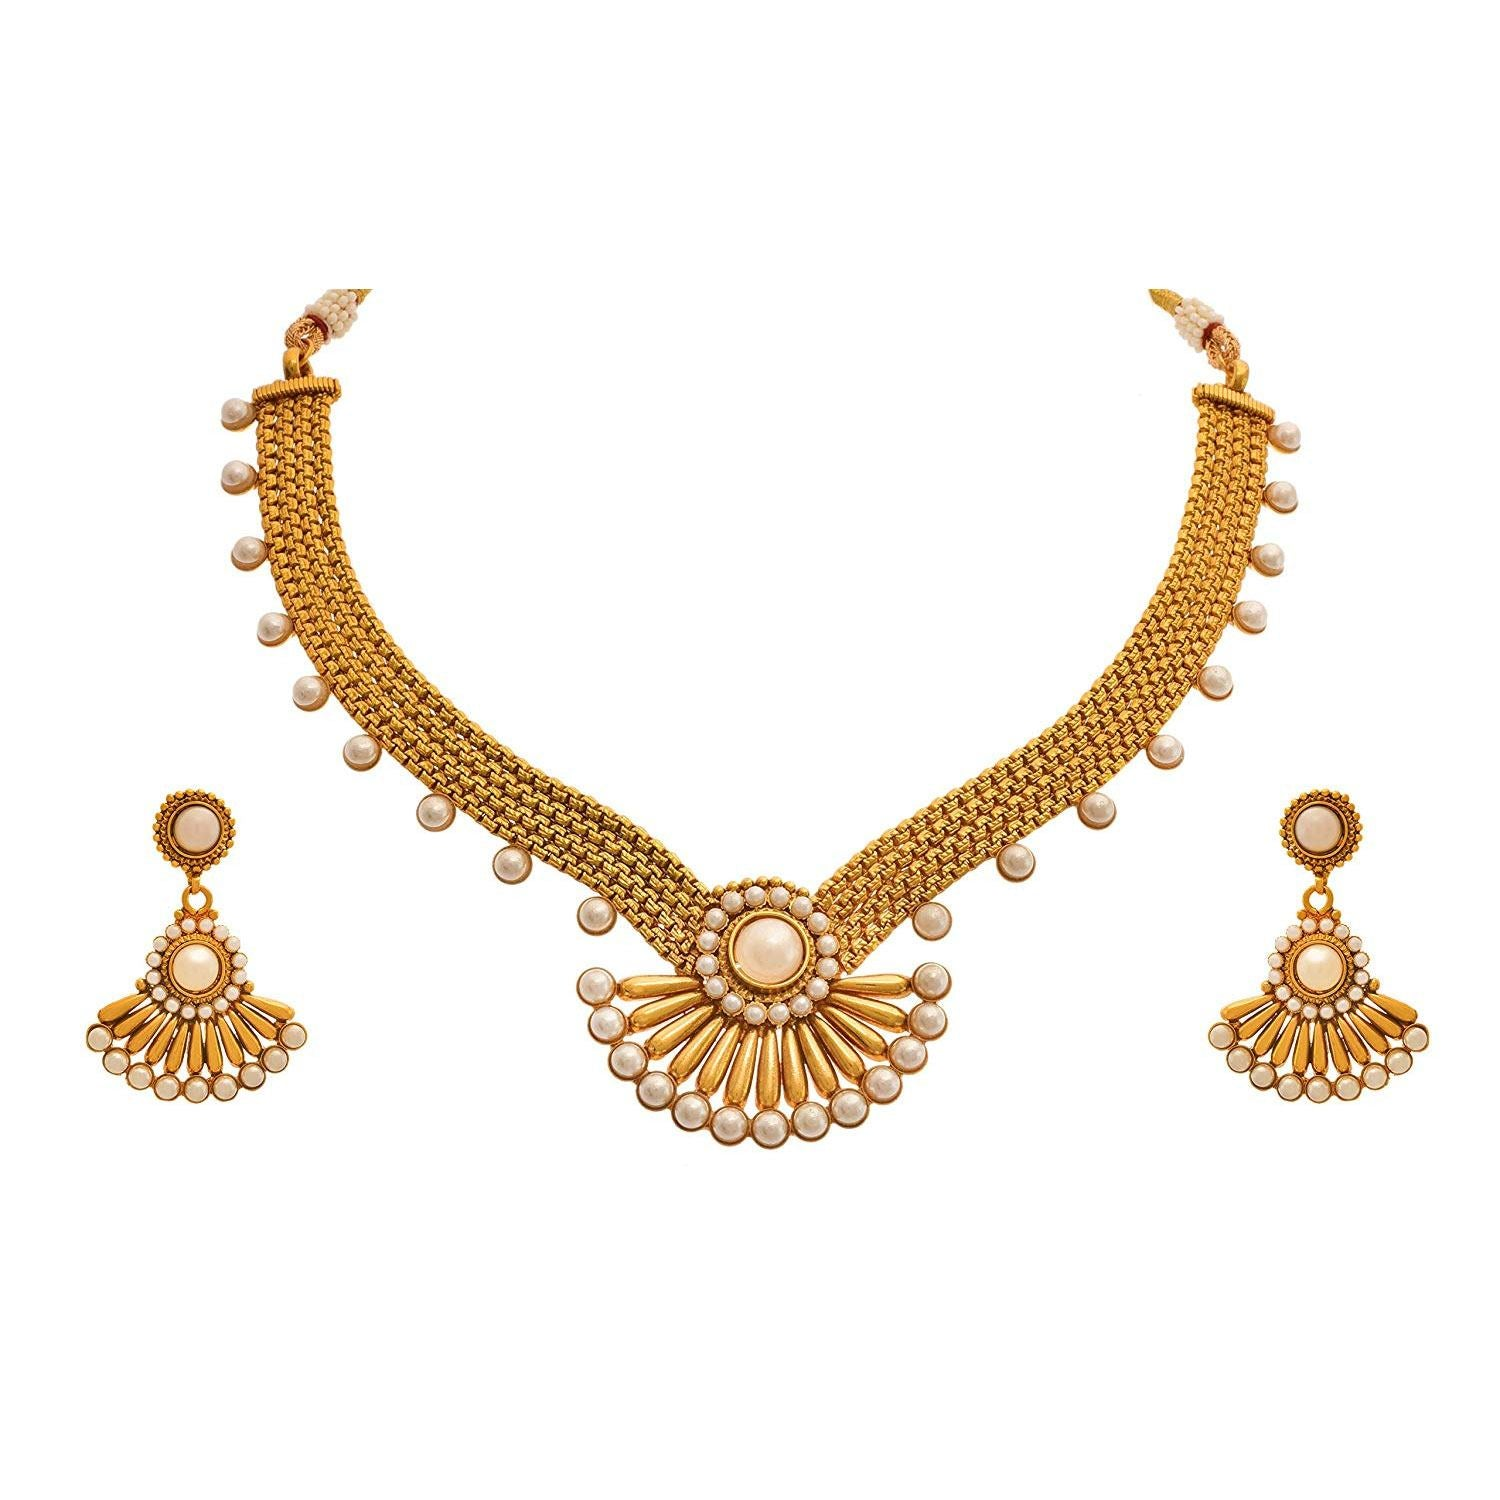 JFL - Traditional Ethnic One Gram Gold Plated Pearls Designer Necklace Set With Earring for Women & Girls.